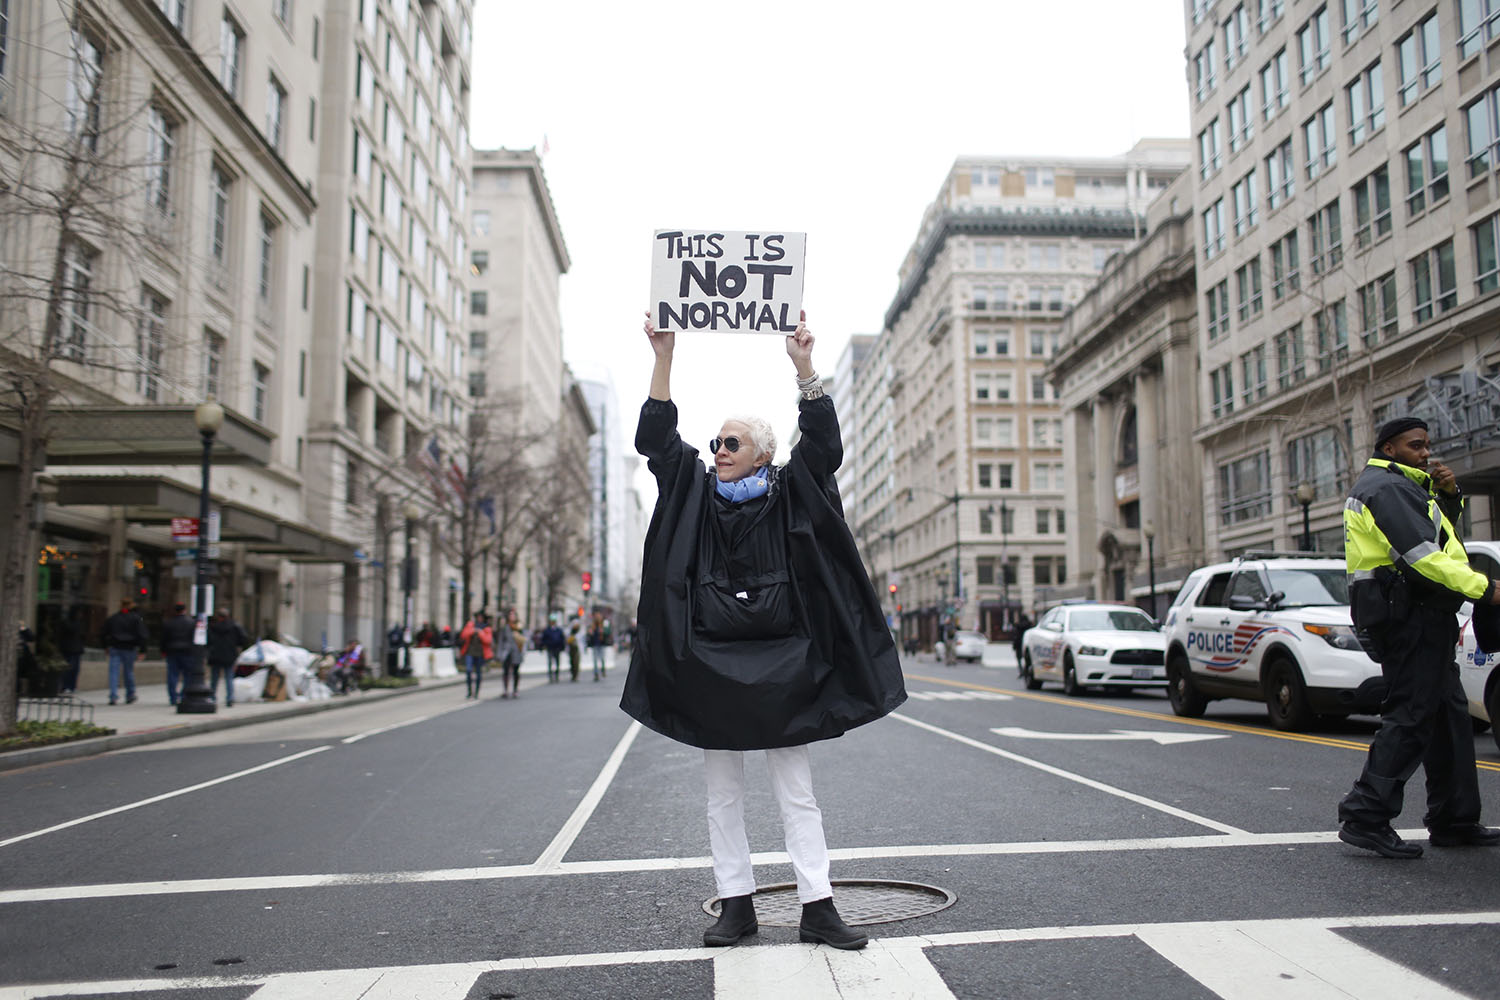 A protester stands in the middle of a usually-busy downtown street in Washington, D.C.